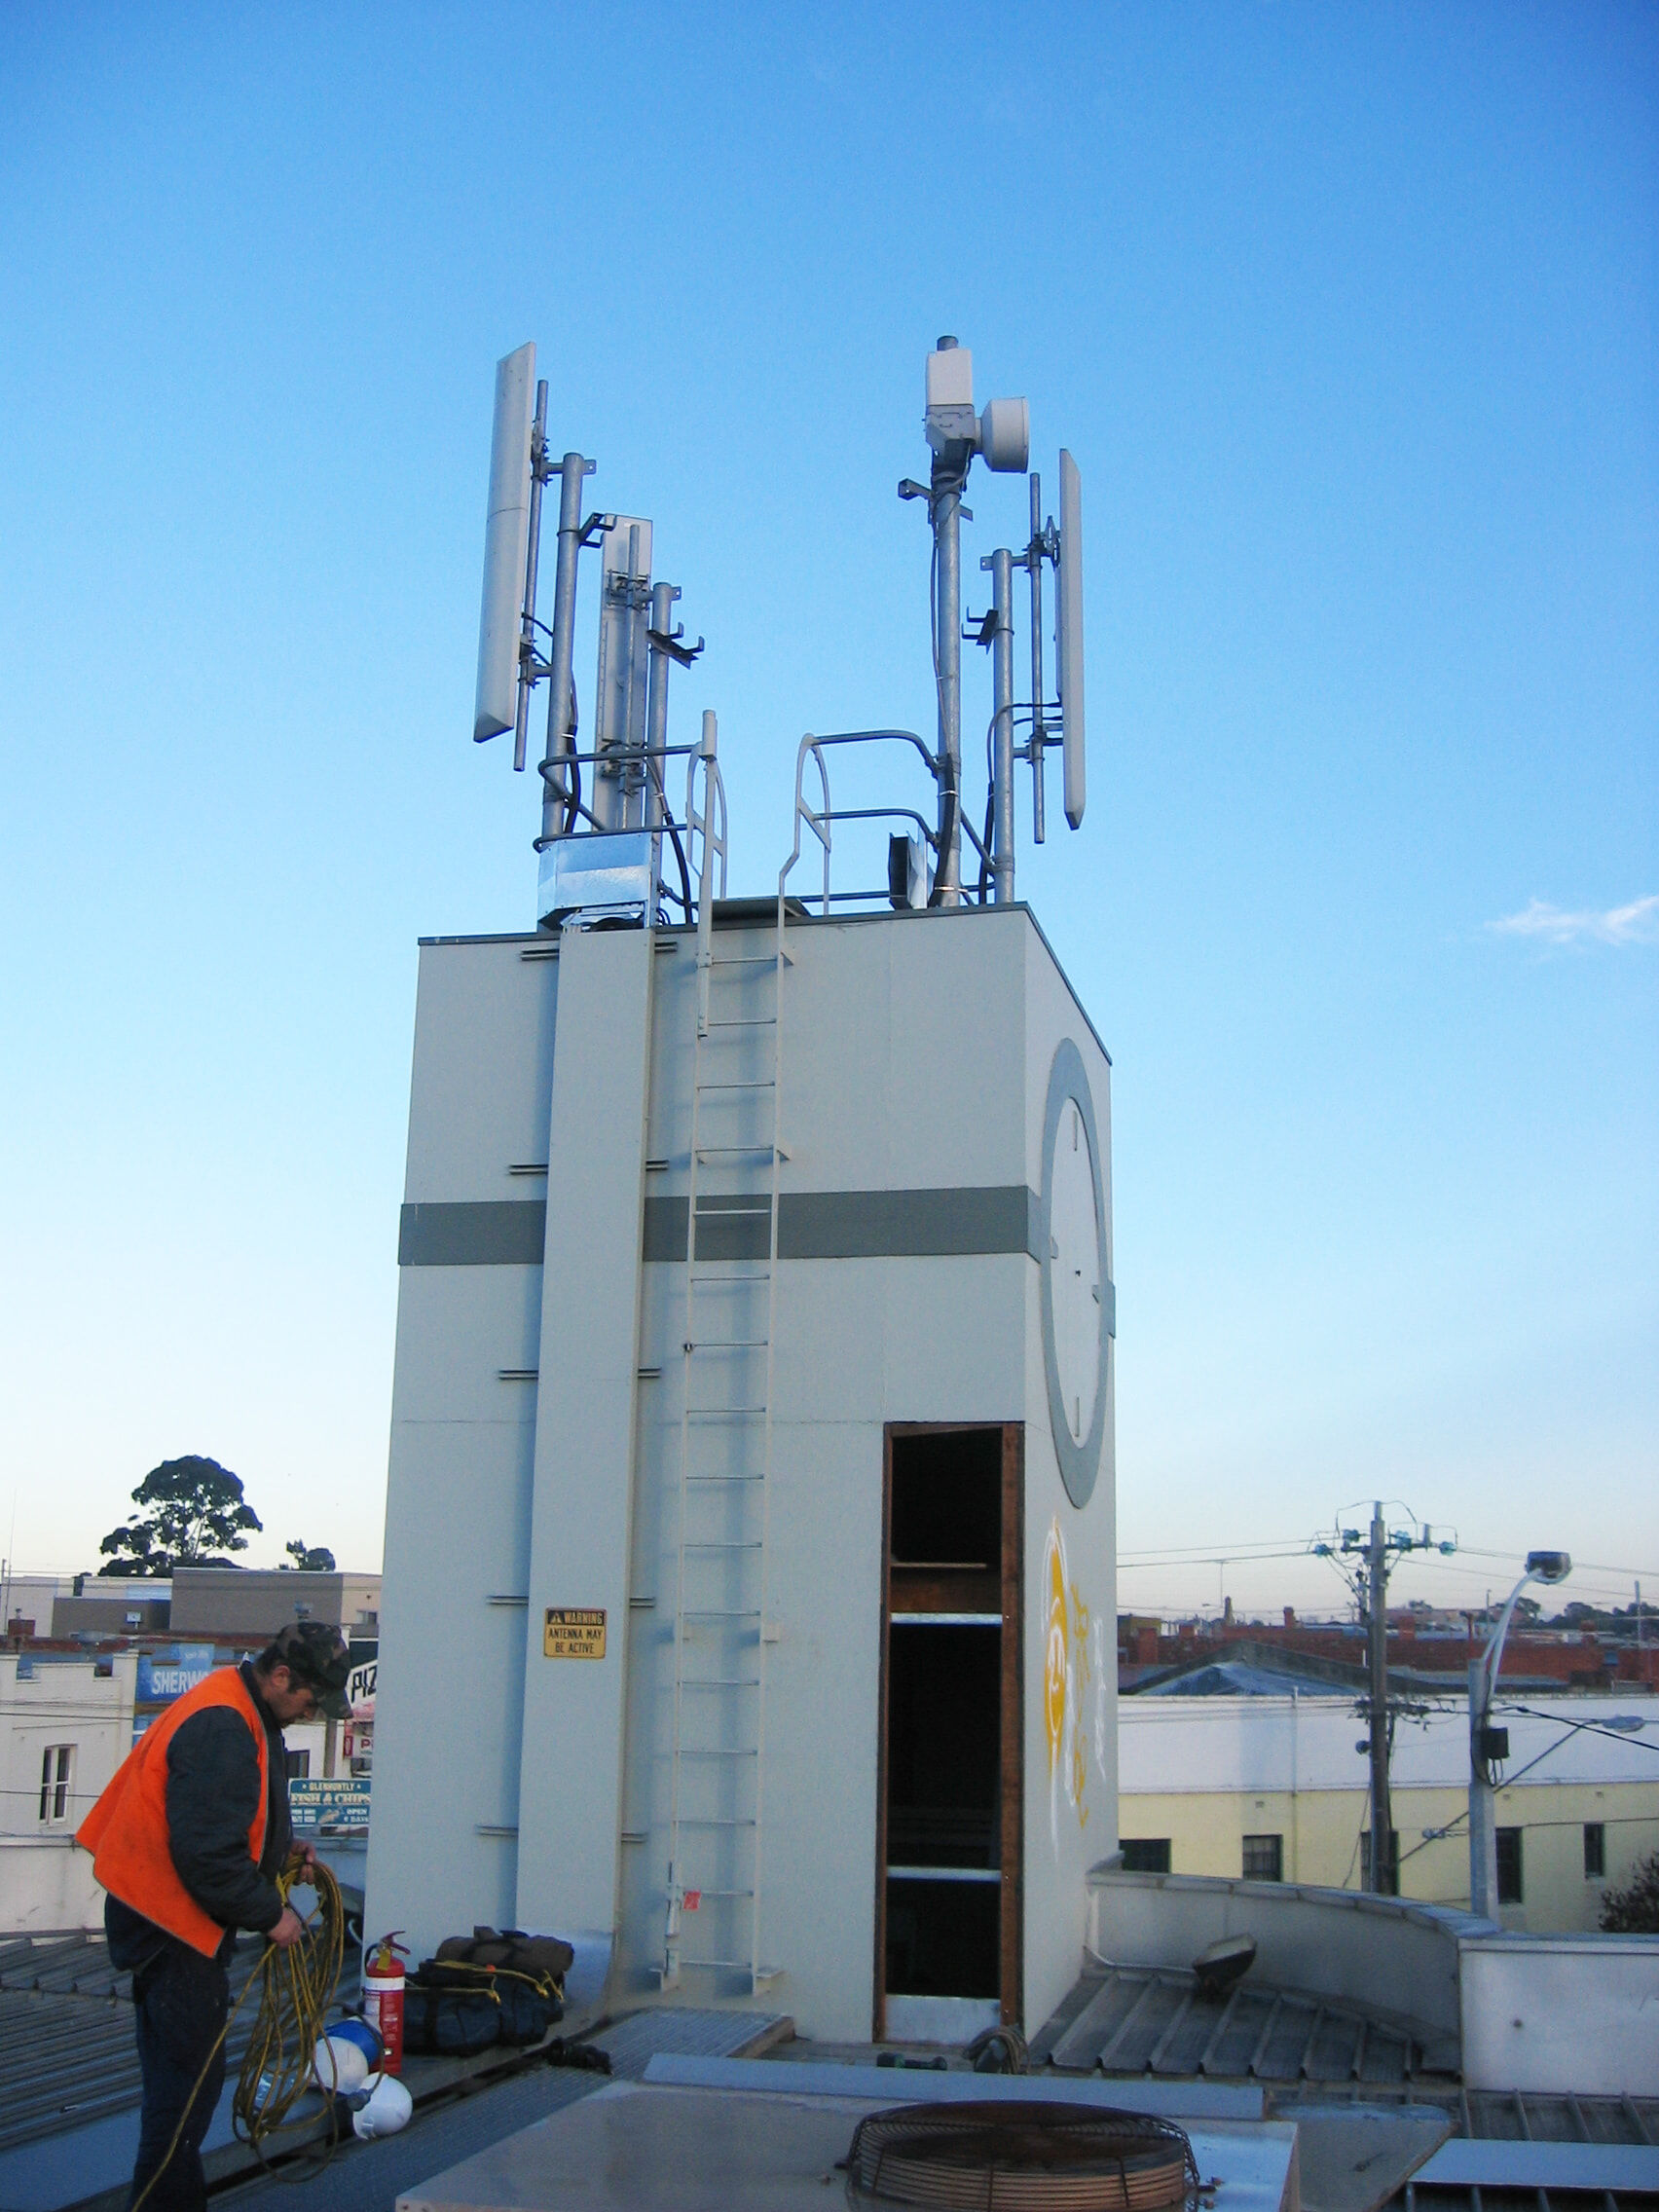 Telco Telecommunication roof Tower 5